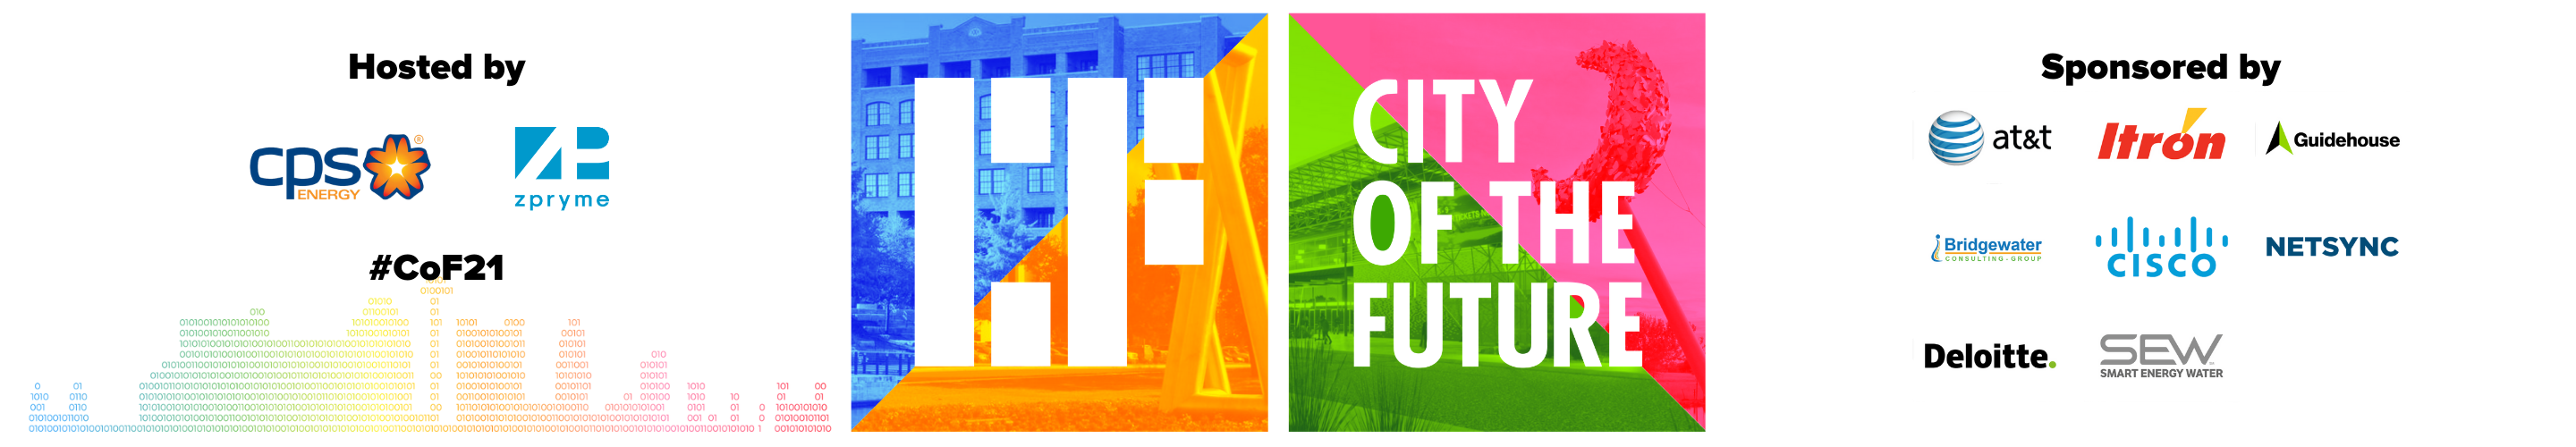 City of the Future - October Session